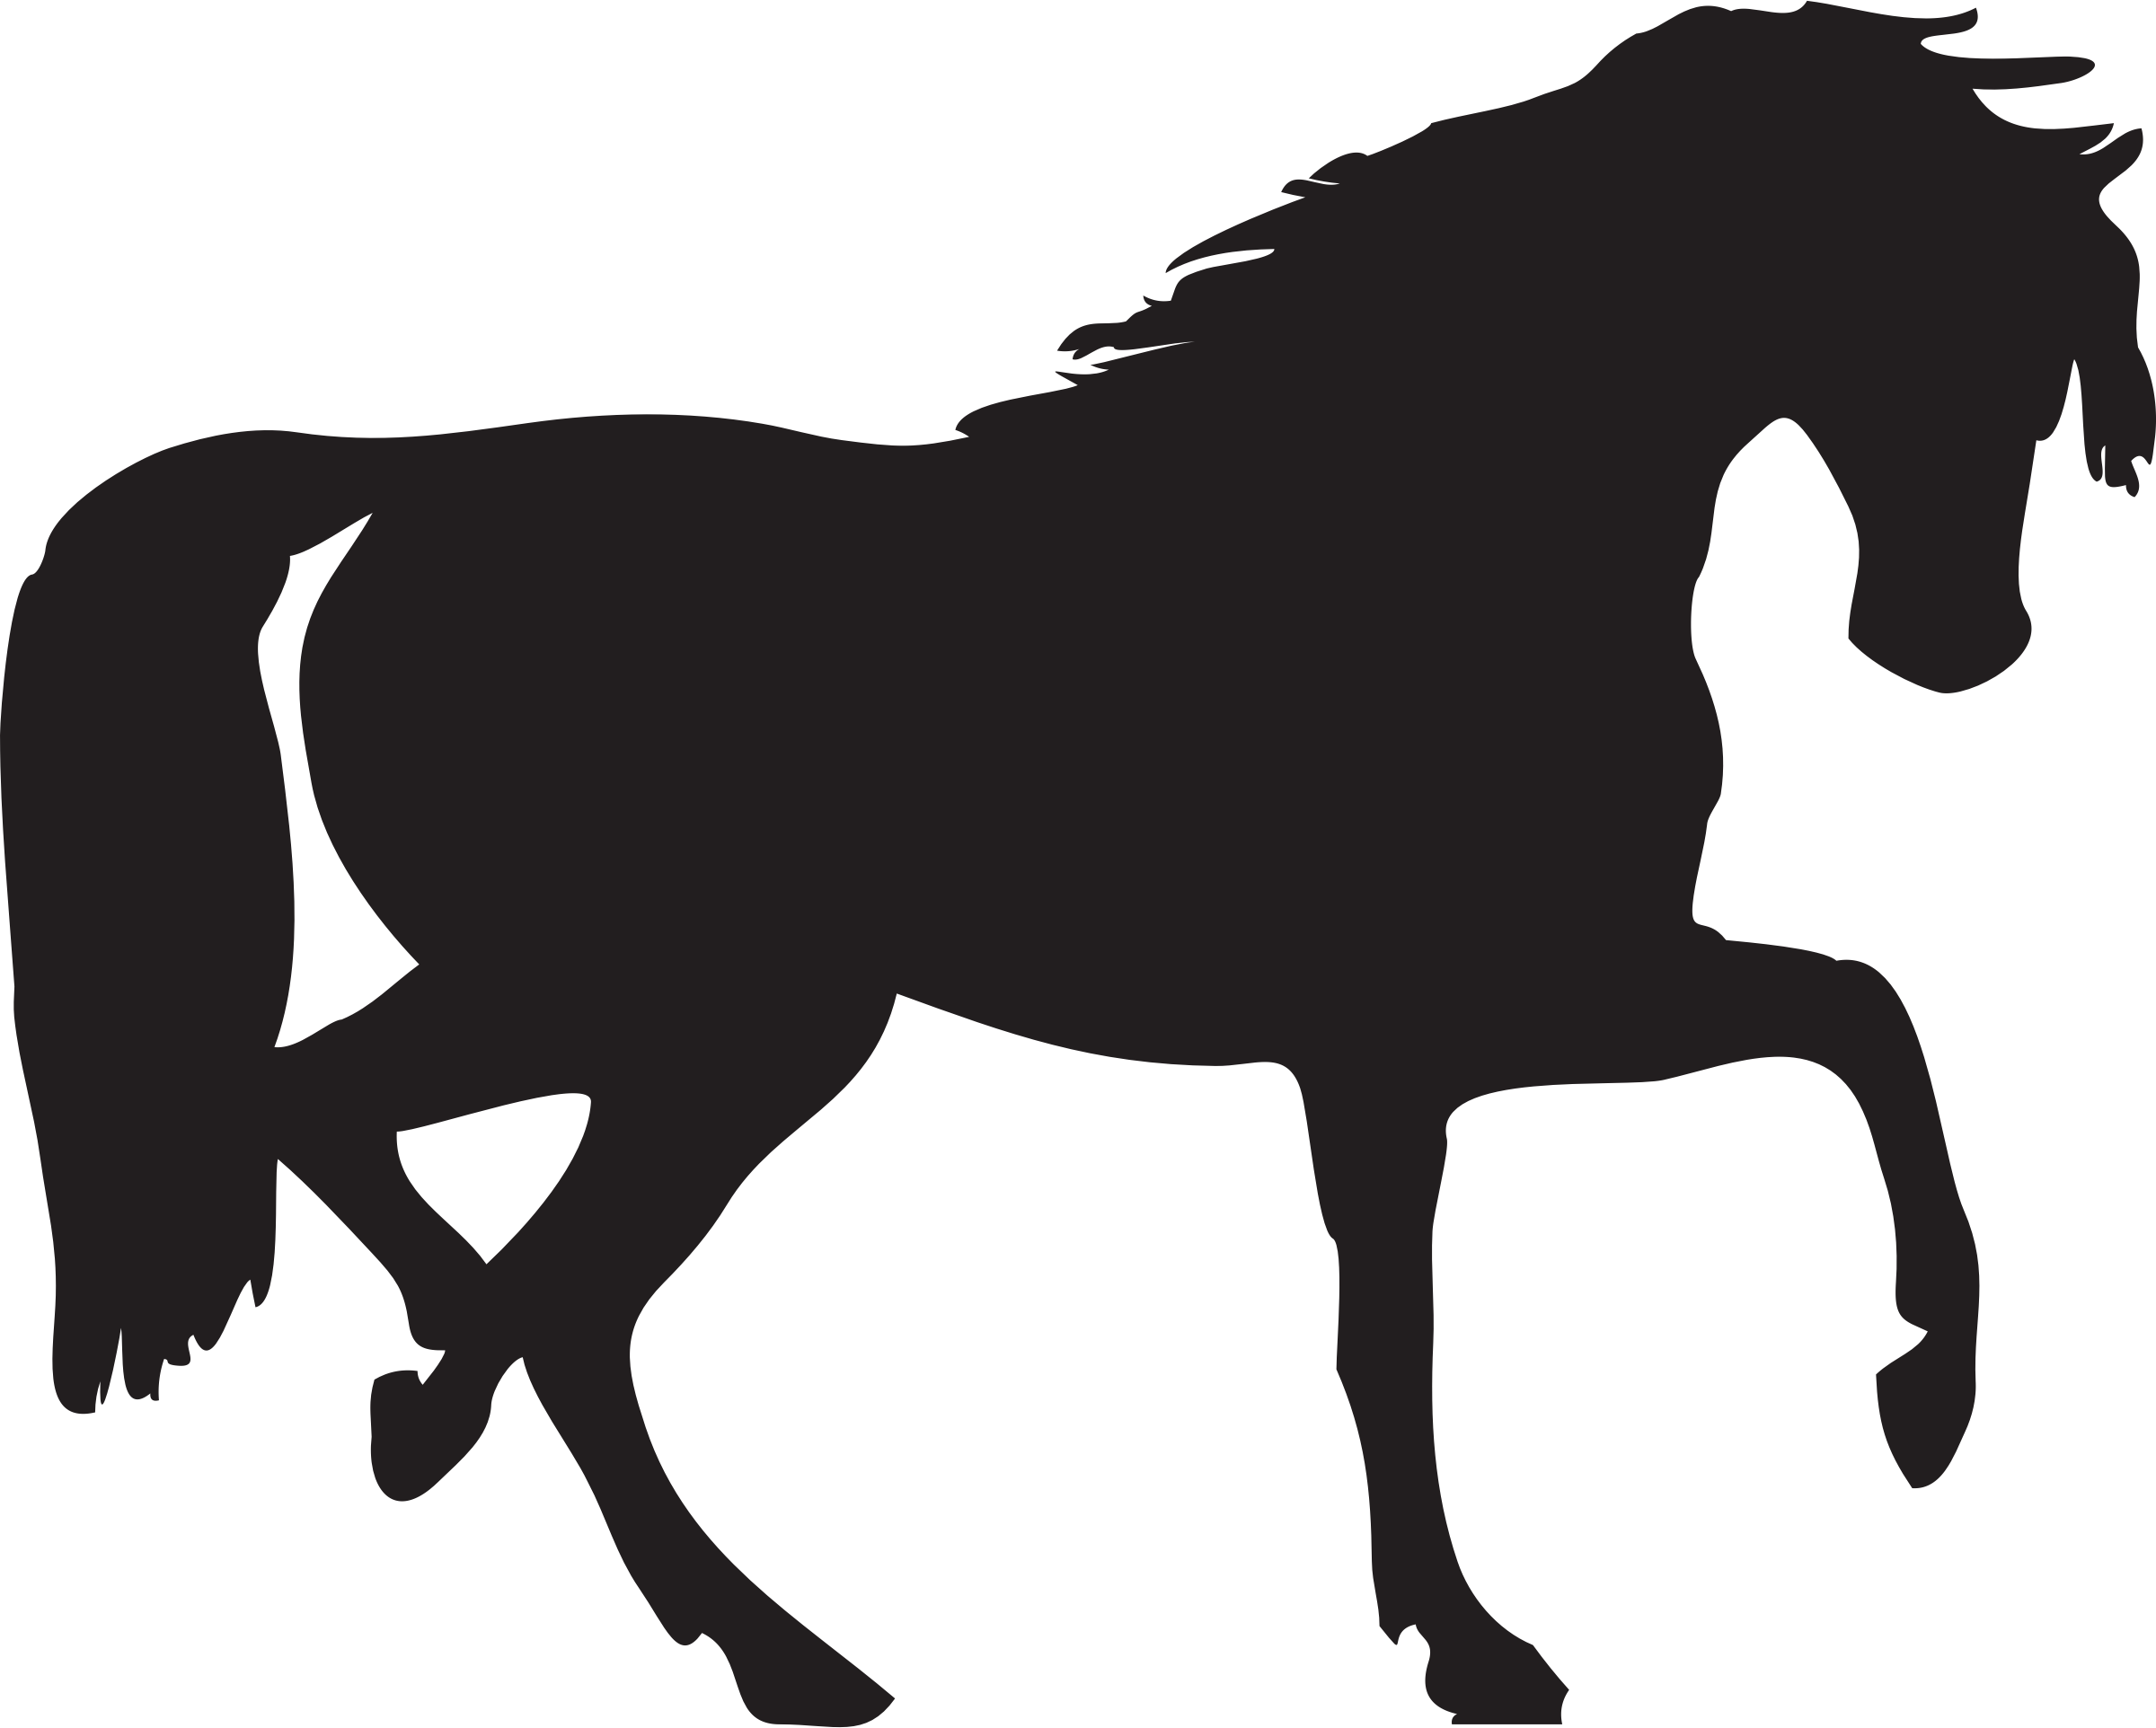 Horse silhouette vector clipart image.